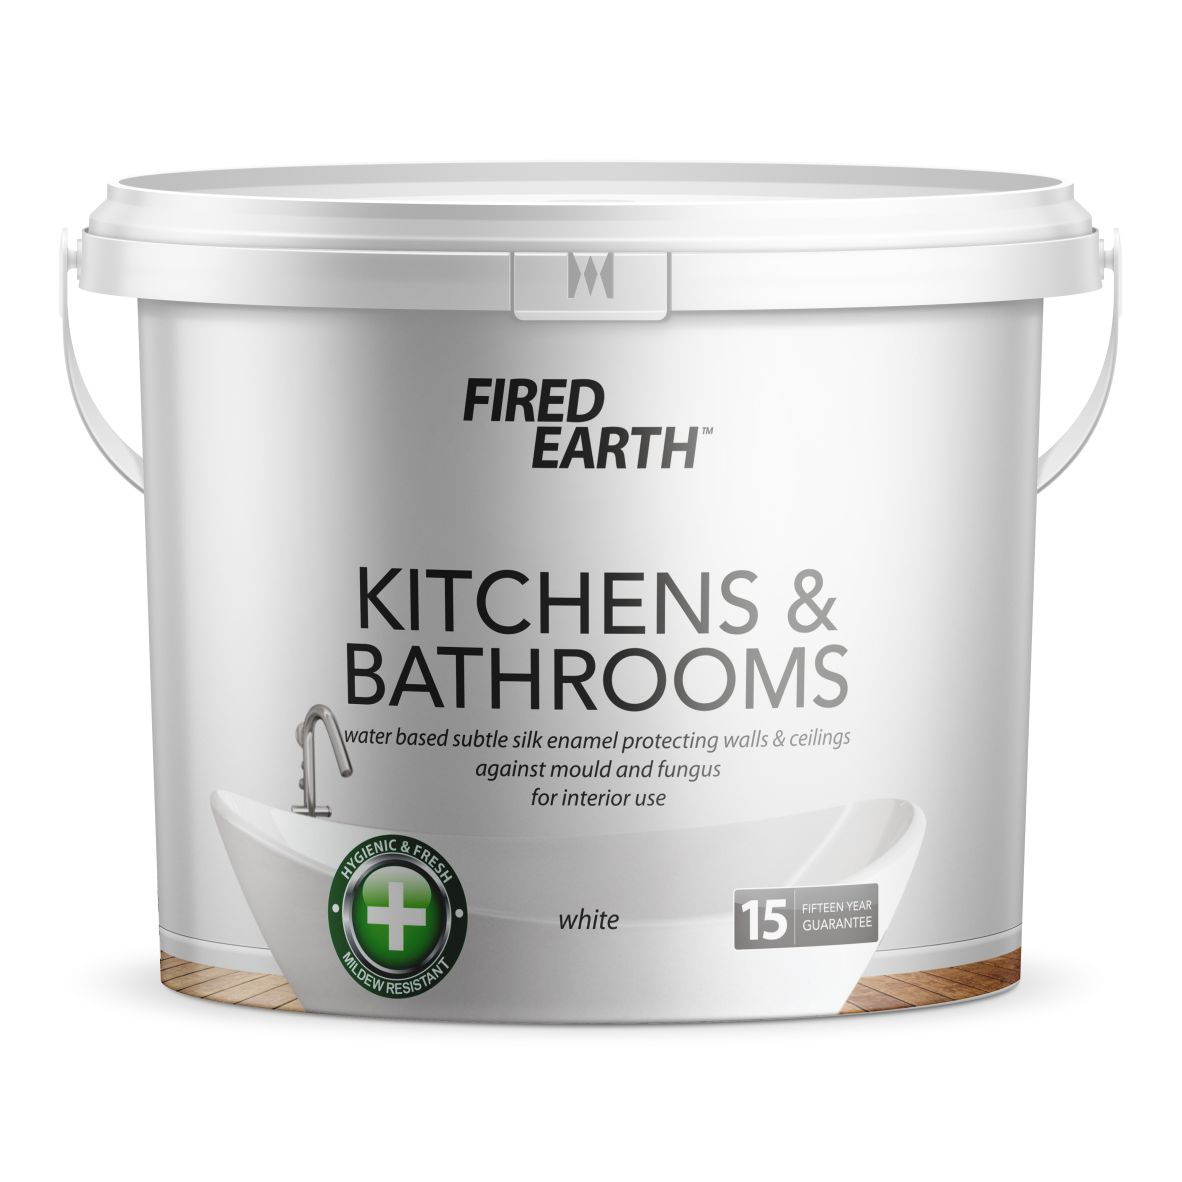 FE Kitchens & Bathrooms.jpg